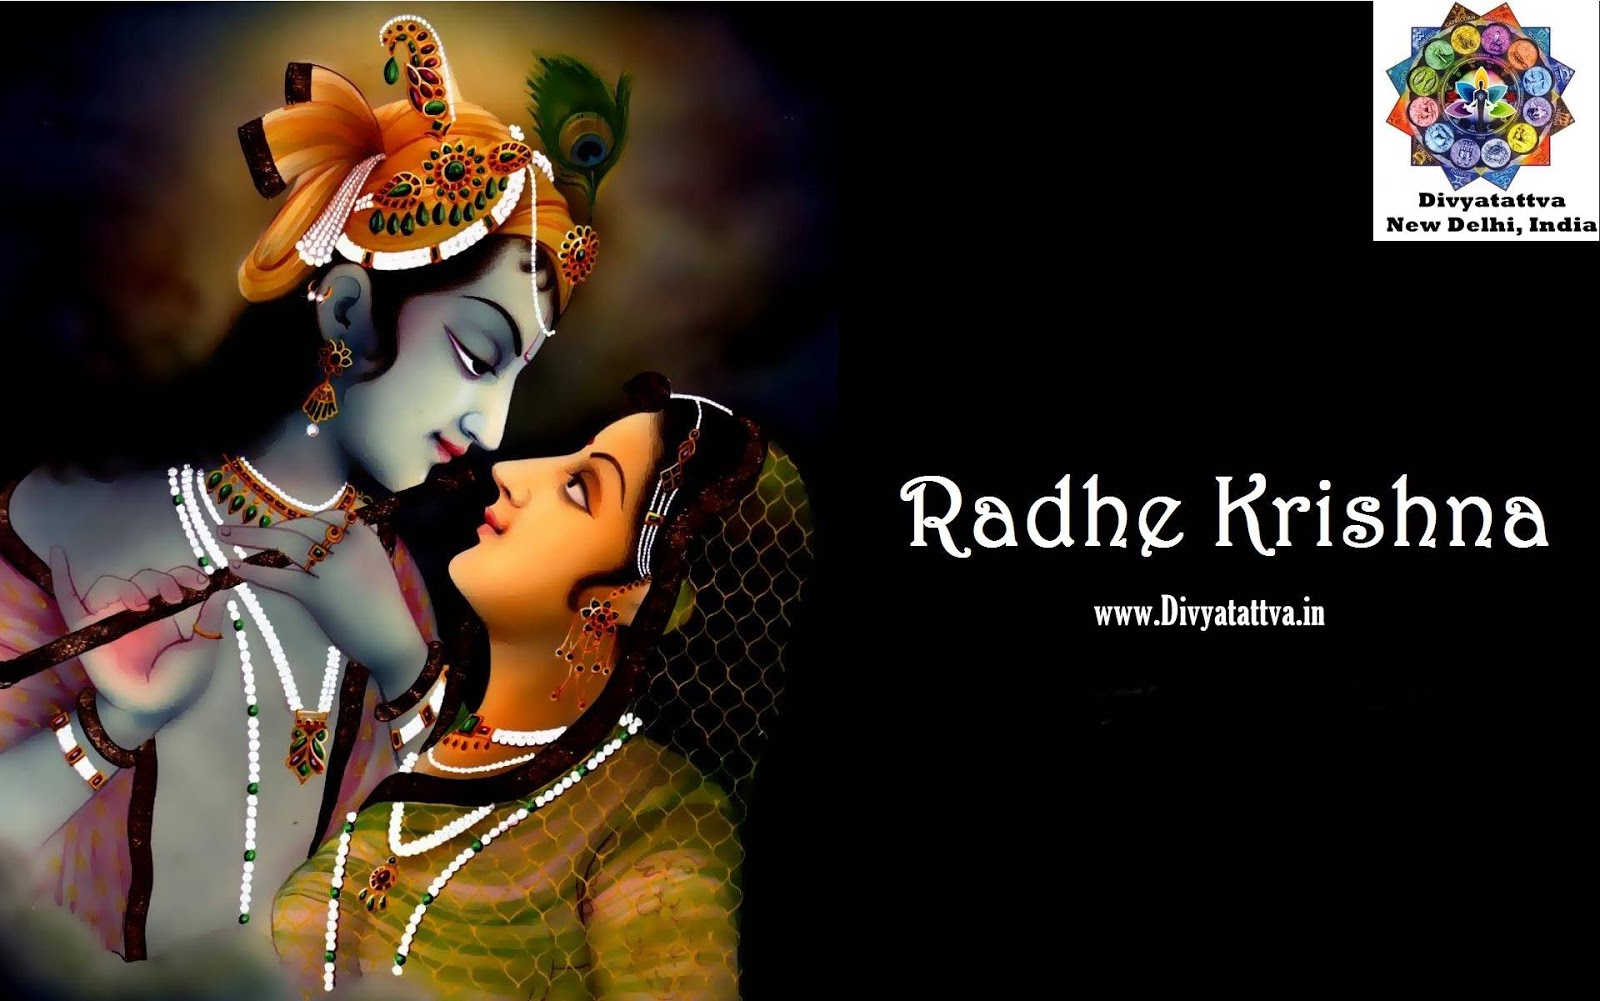 Happy Janmashtami Images radha krishna hindu god spiritual wallpaper backgrounds www.divyatattva.in